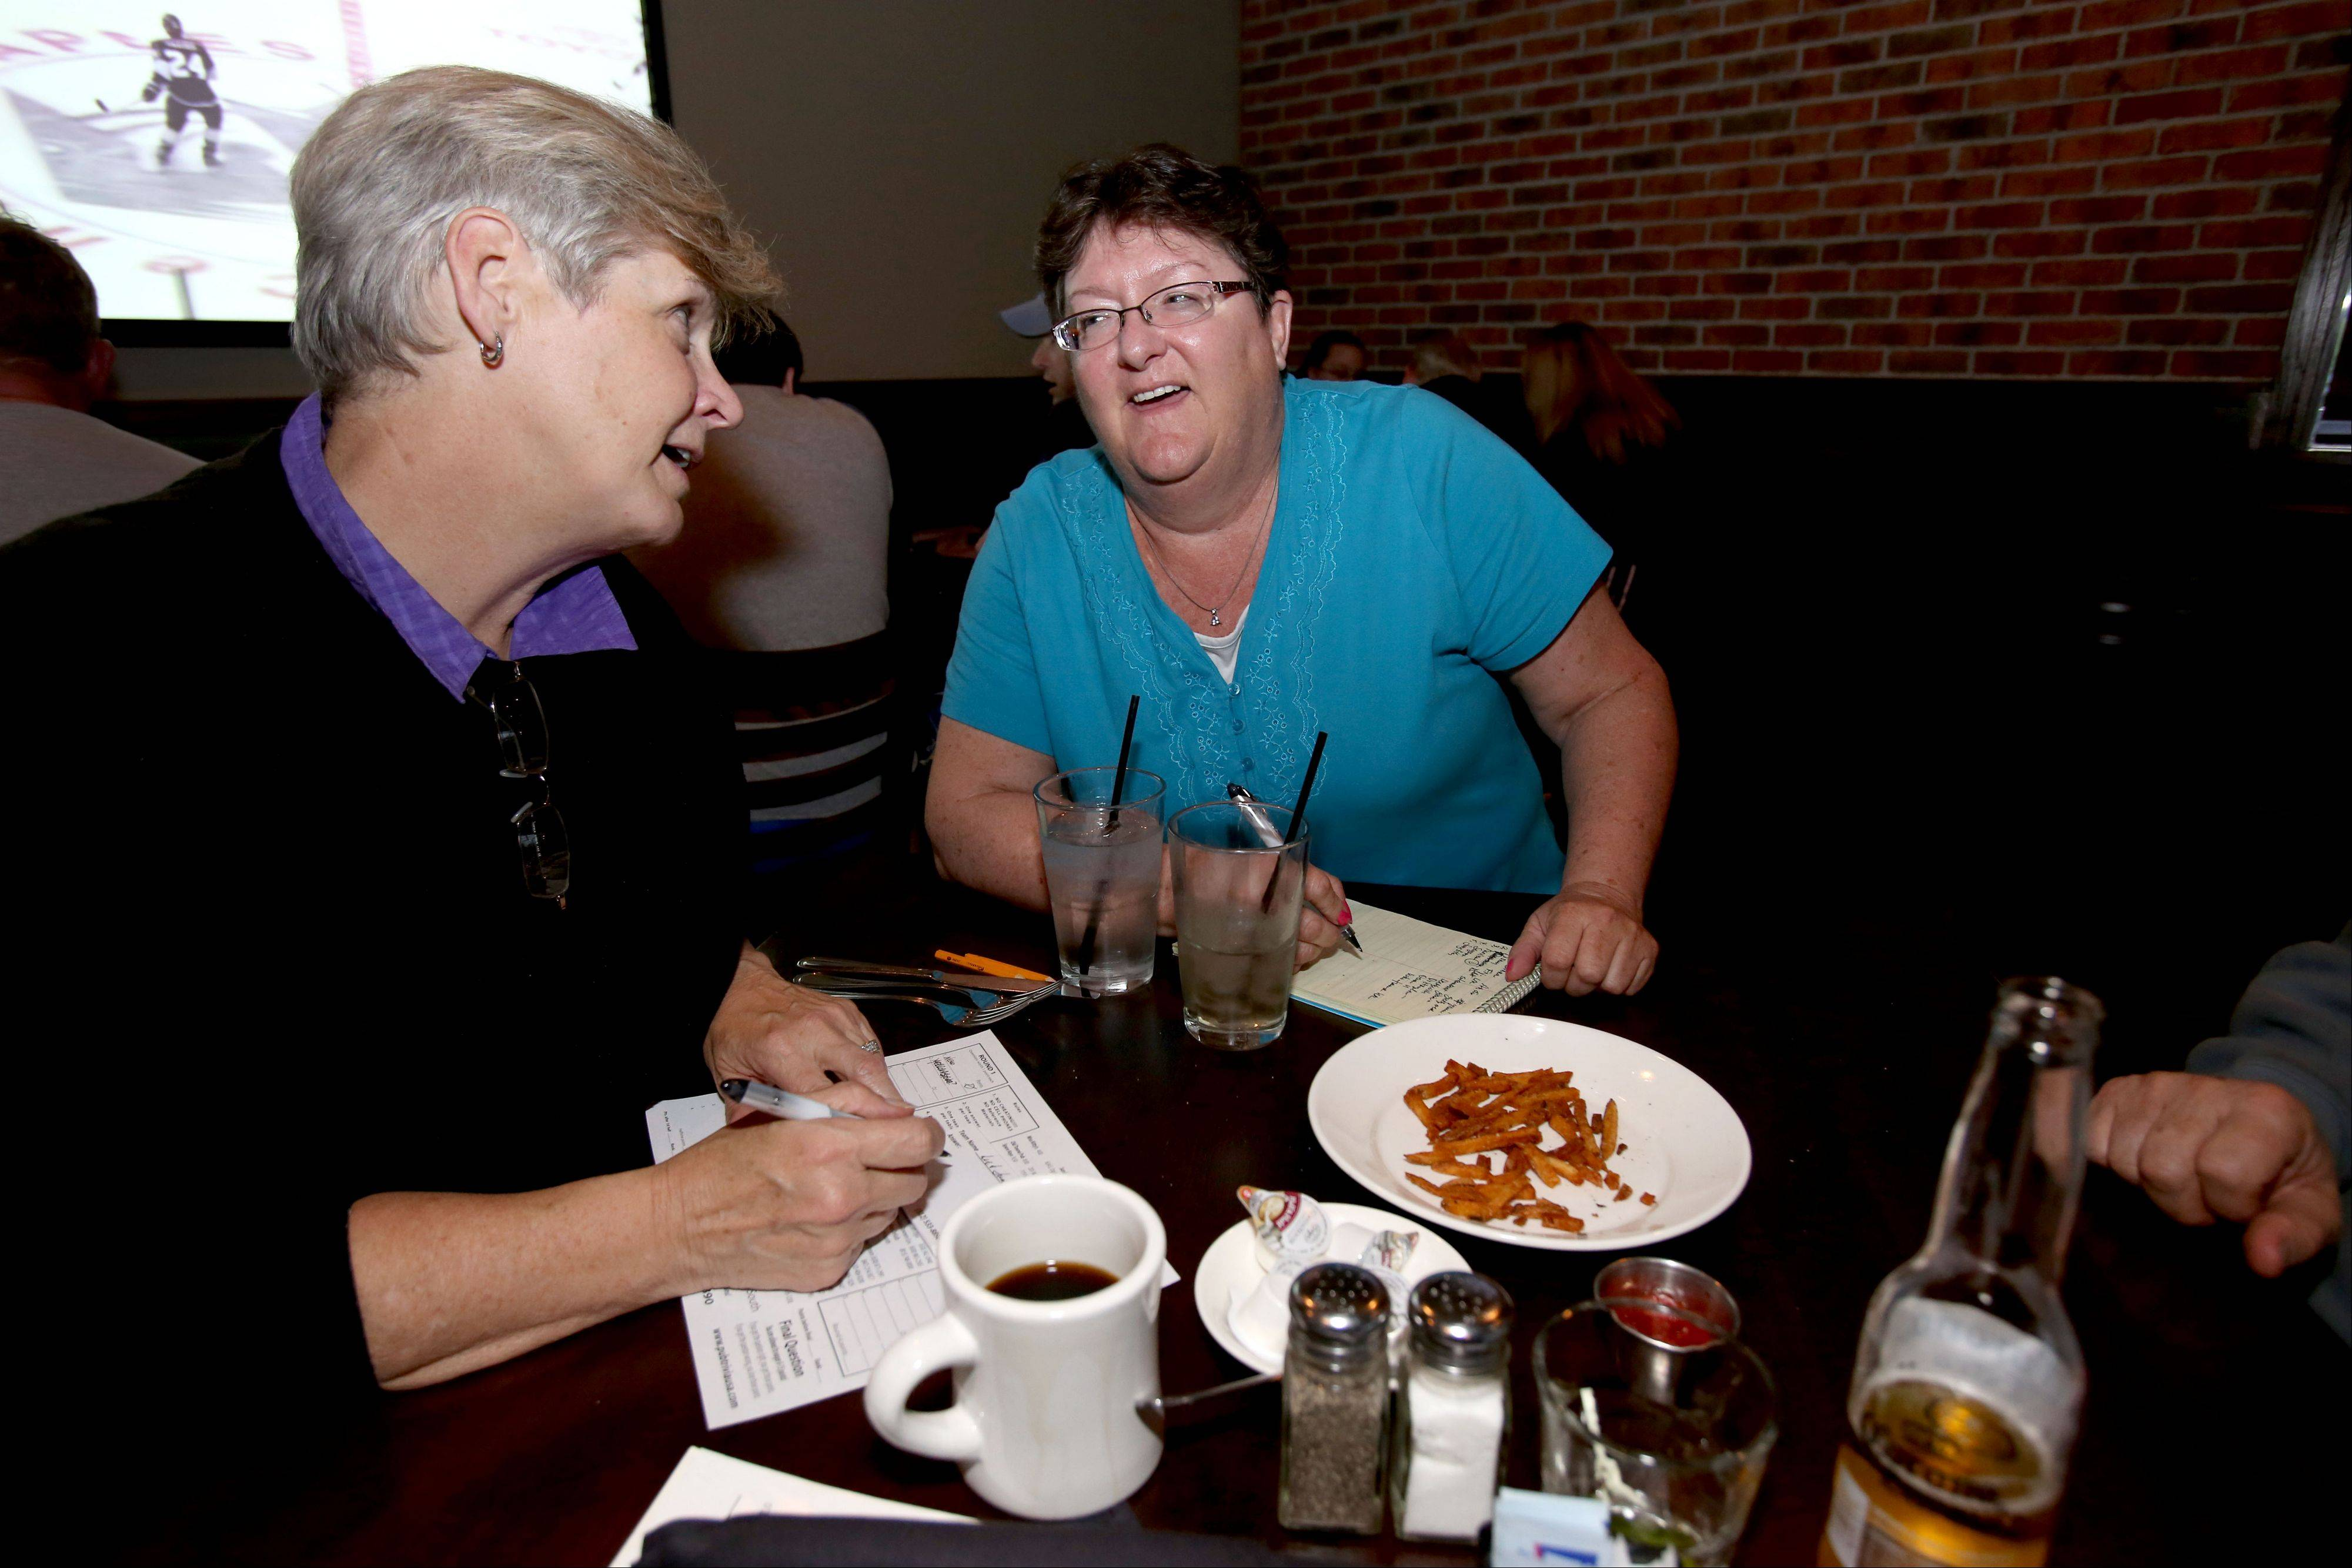 Wheaton residents Julie Mategrano, left, and Brenda Mitchell, right, try to figure out the next answer during Trivia Night at Warren's Ale House in Wheaton.